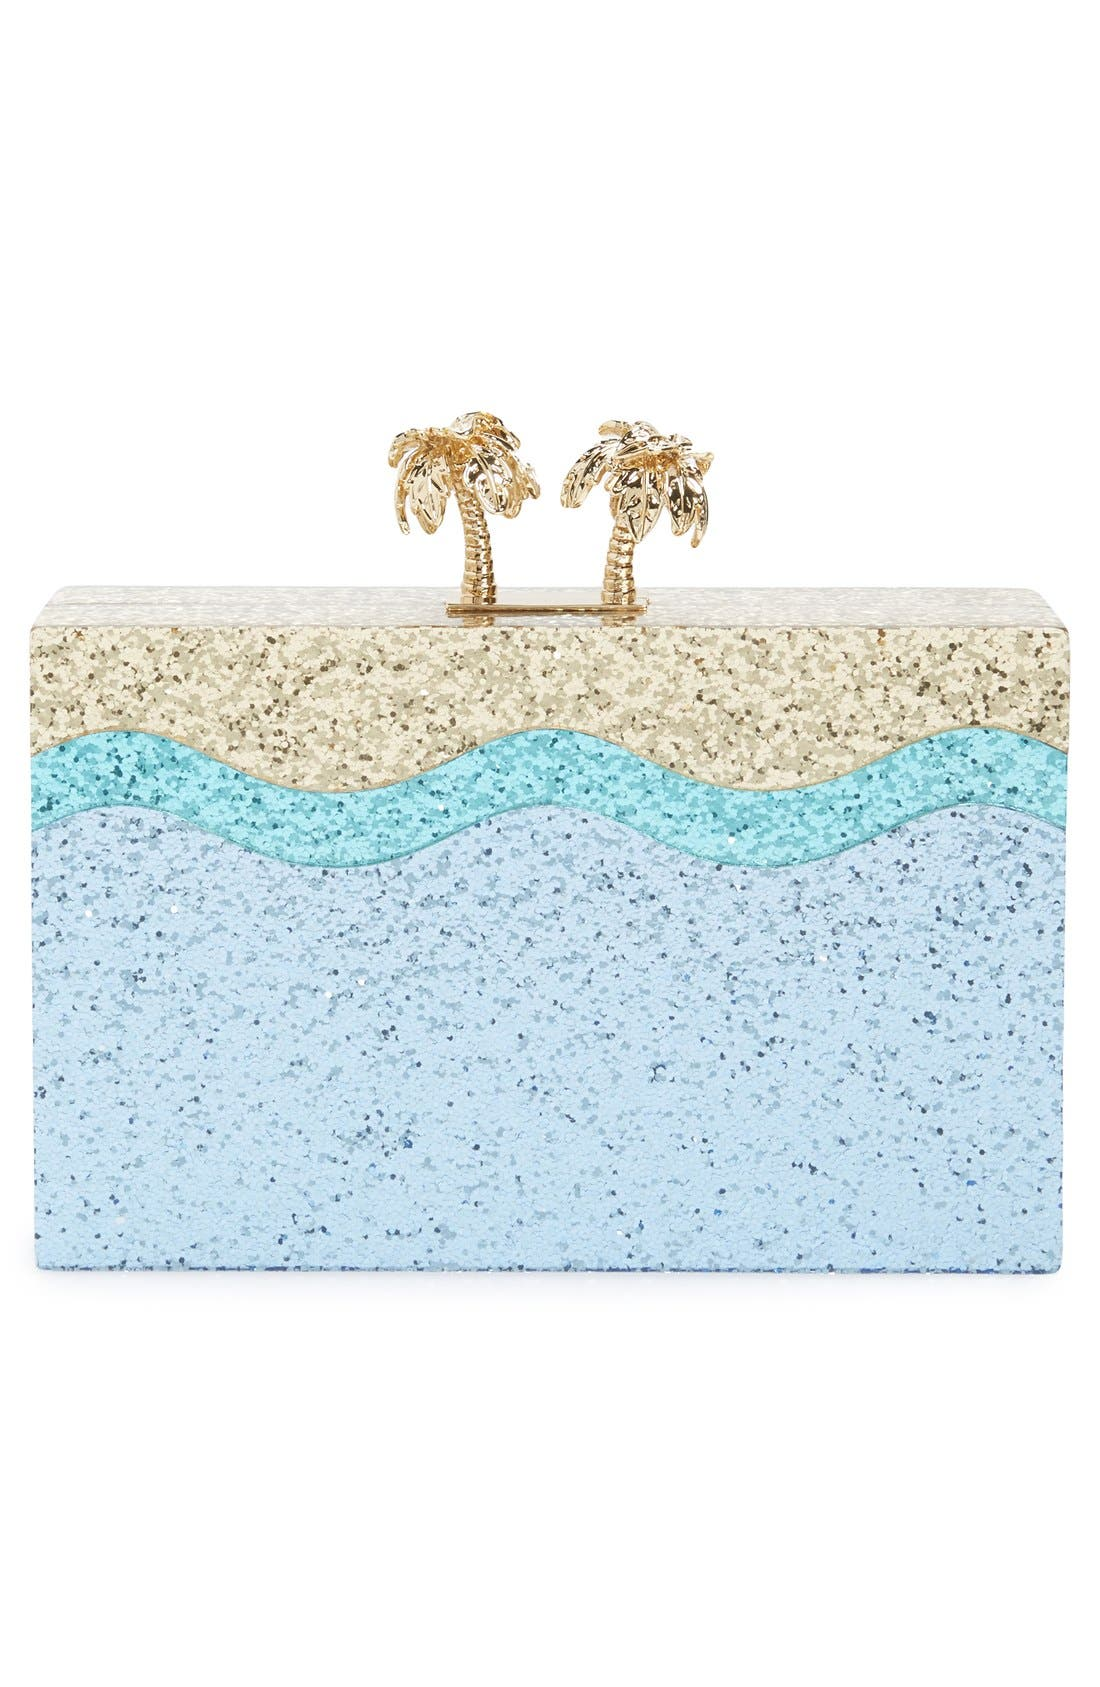 Alternate Image 3  - kate spade new york 'i need a vacation' box clutch